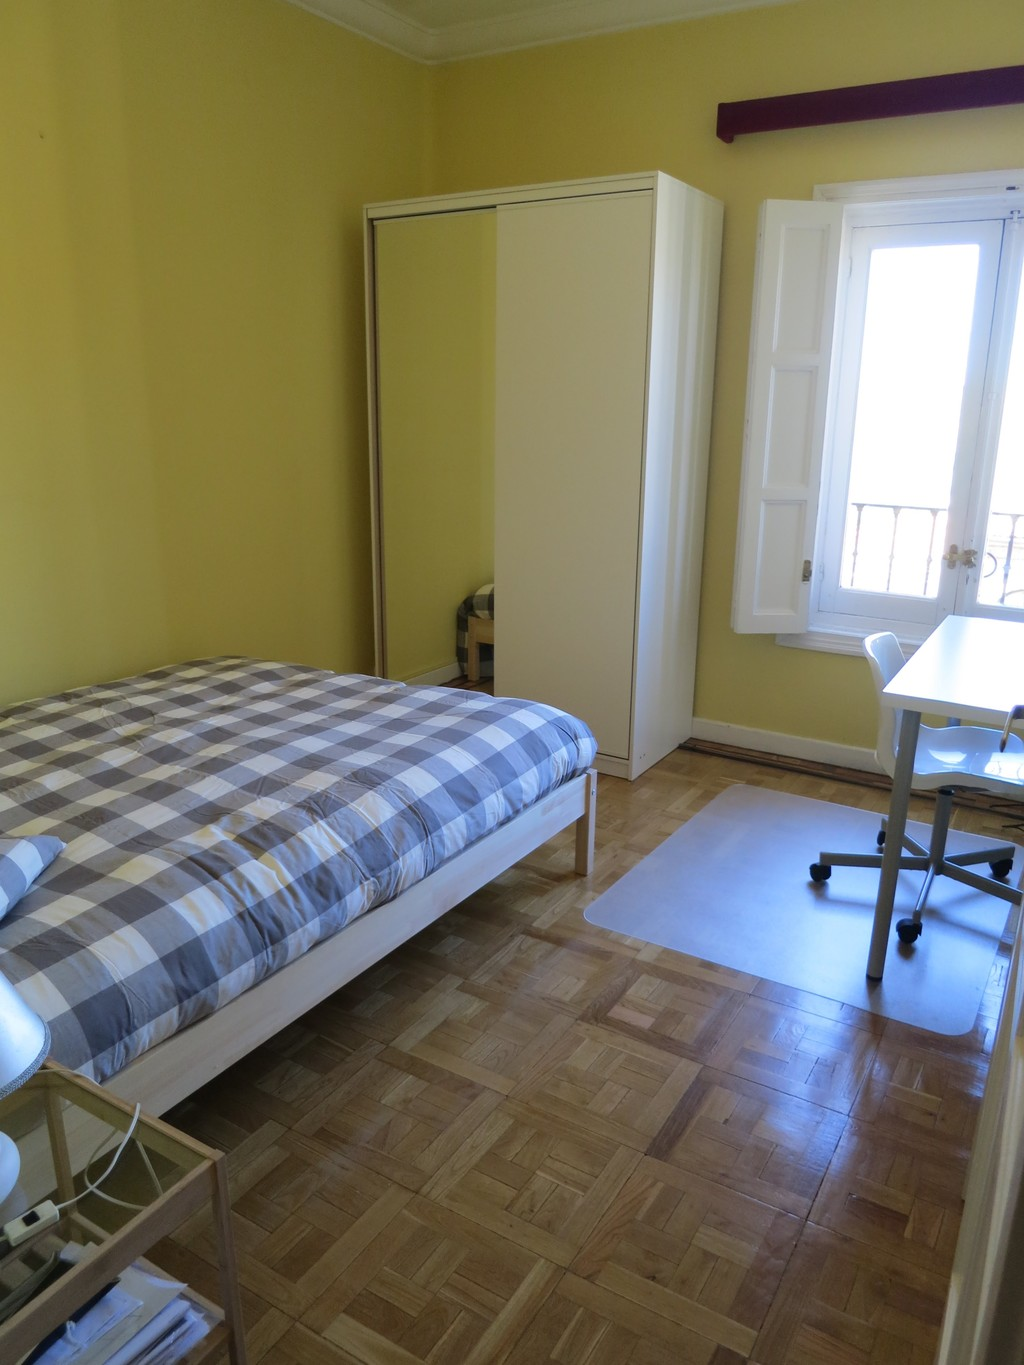 """4 bedroom flat in Segovia """"old town"""" very close to IE ..."""